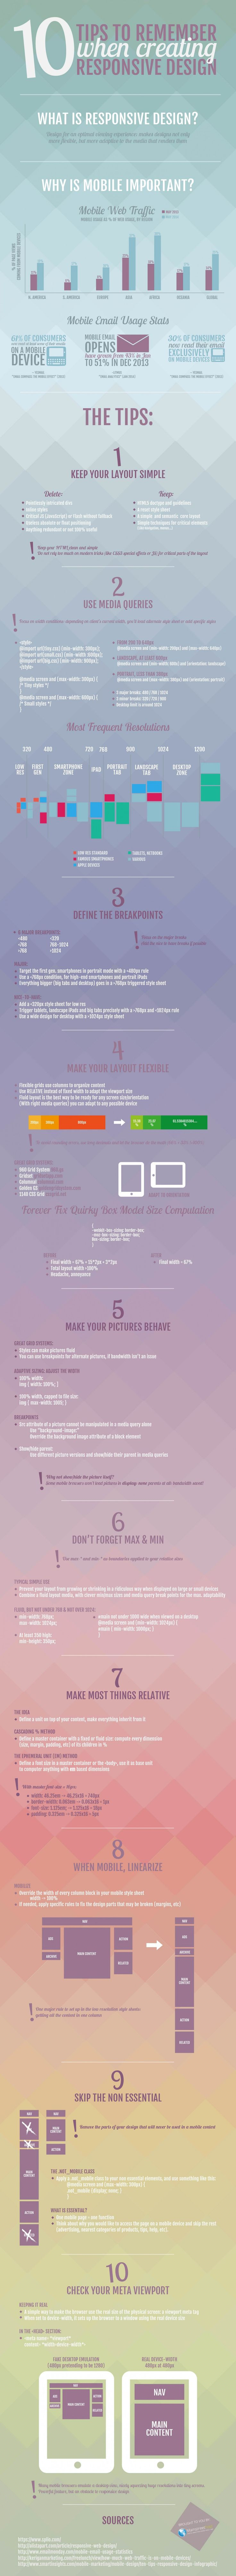 10 Tips to Create Effective Responsive Design #infographic